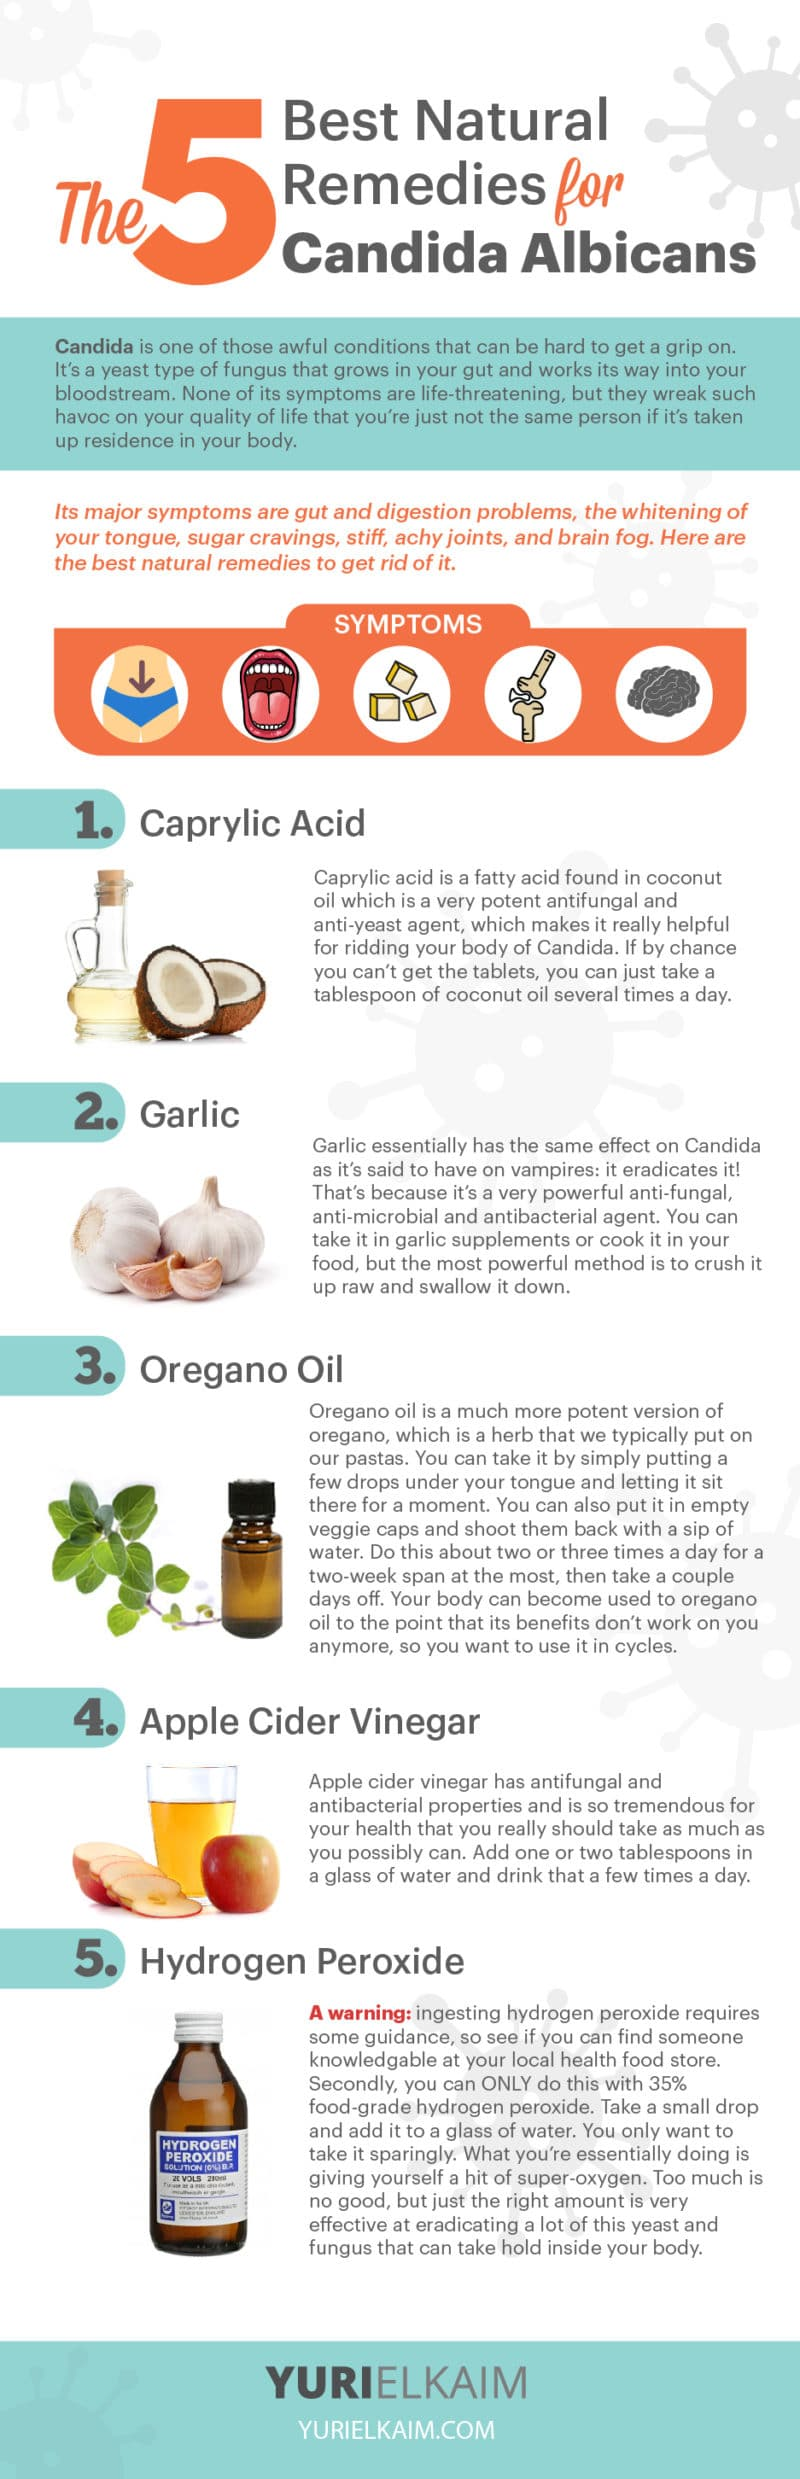 The 5 Best Natural Remedies for Candida Albicans